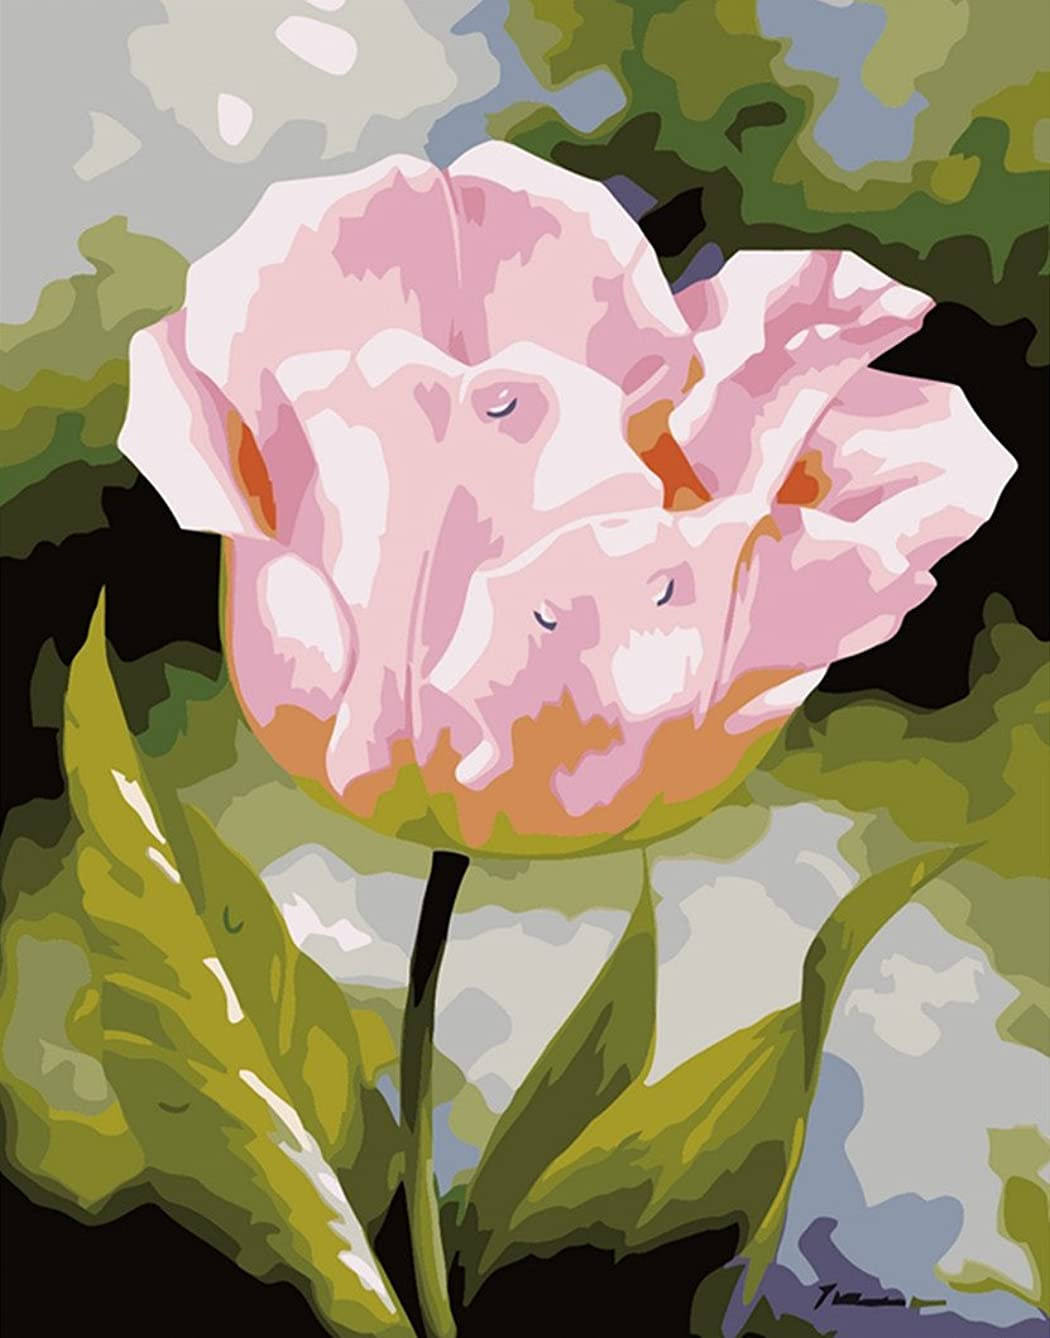 CaptainCrafts New Paint by Number Kits - Pink Flowers 16x20 inch Frameless - Diy Painting by Numbers for Adults Beginner Kids